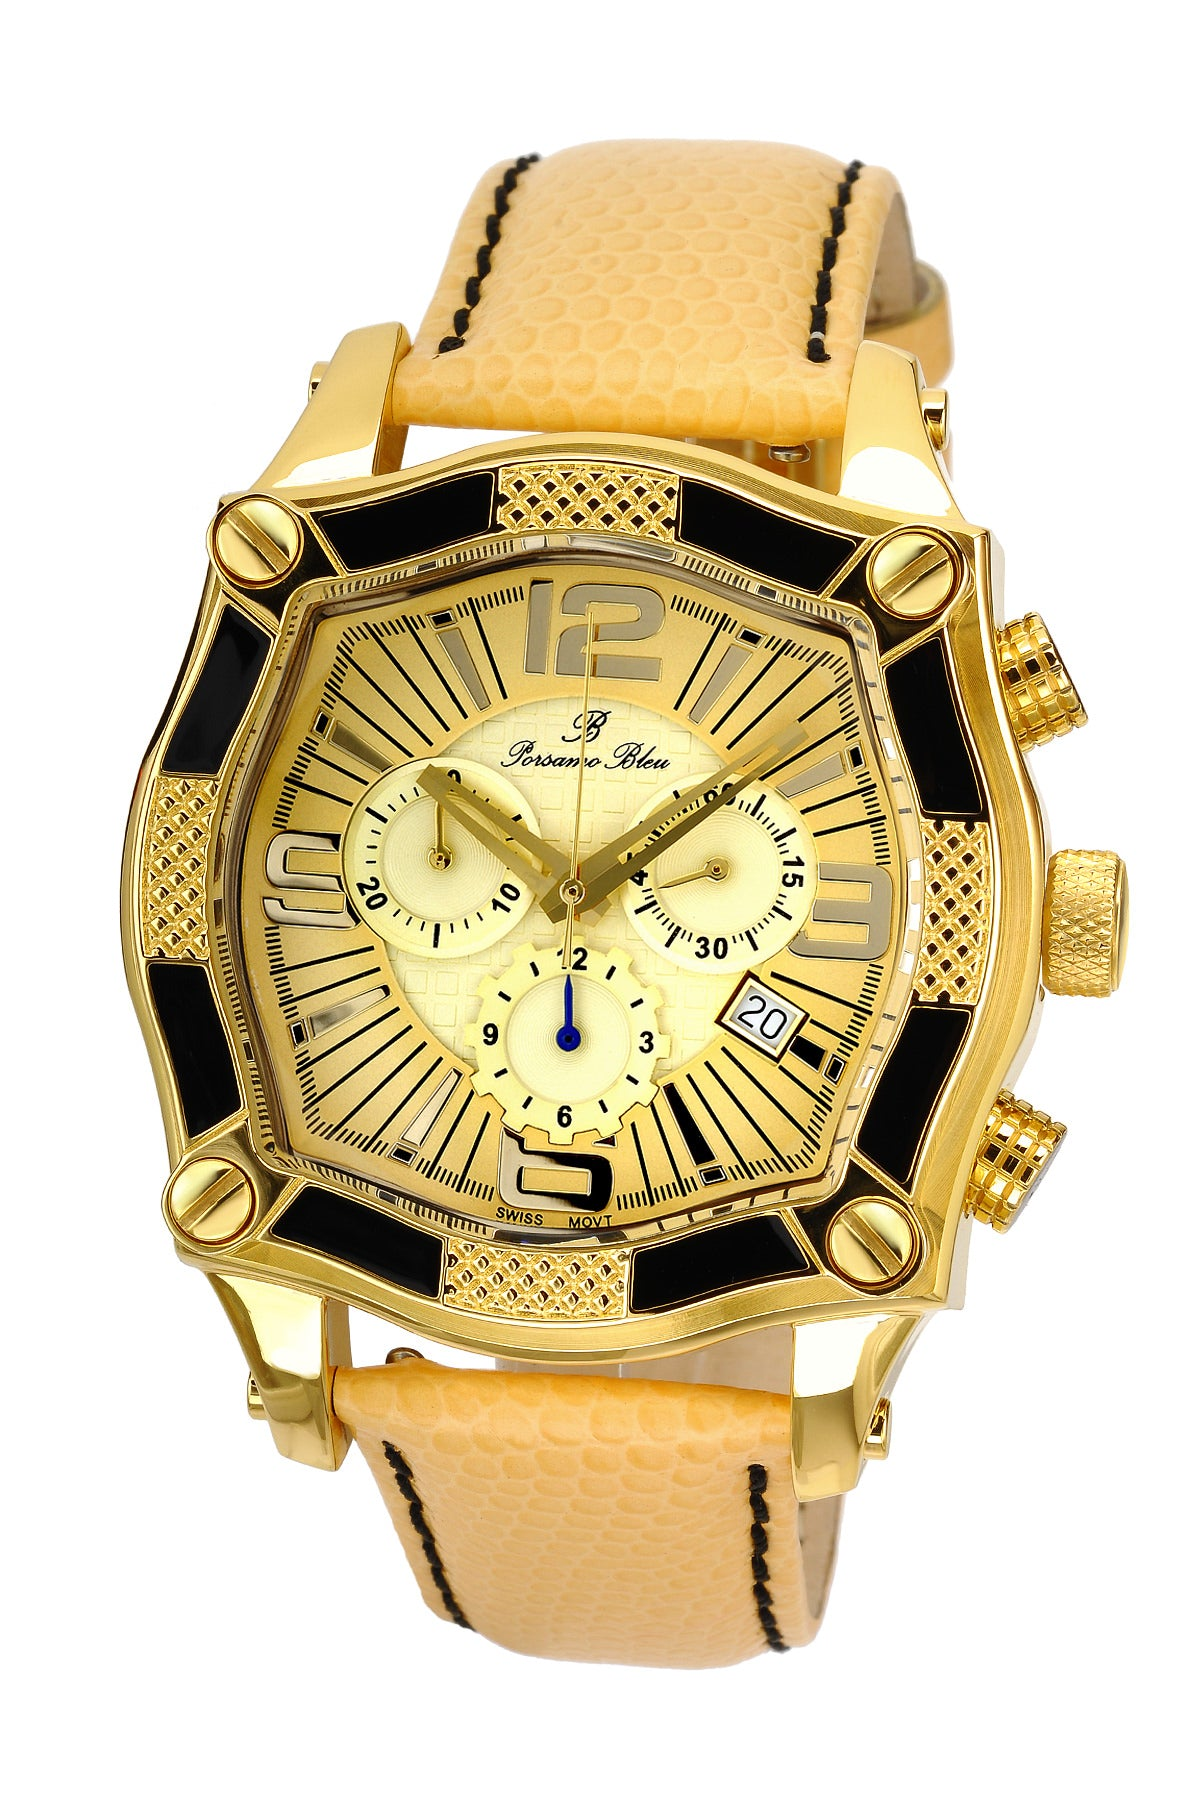 Porsamo Bleu Sao Paulo chronograph men's watch, genuine leather band, gold, butter 023ASPL